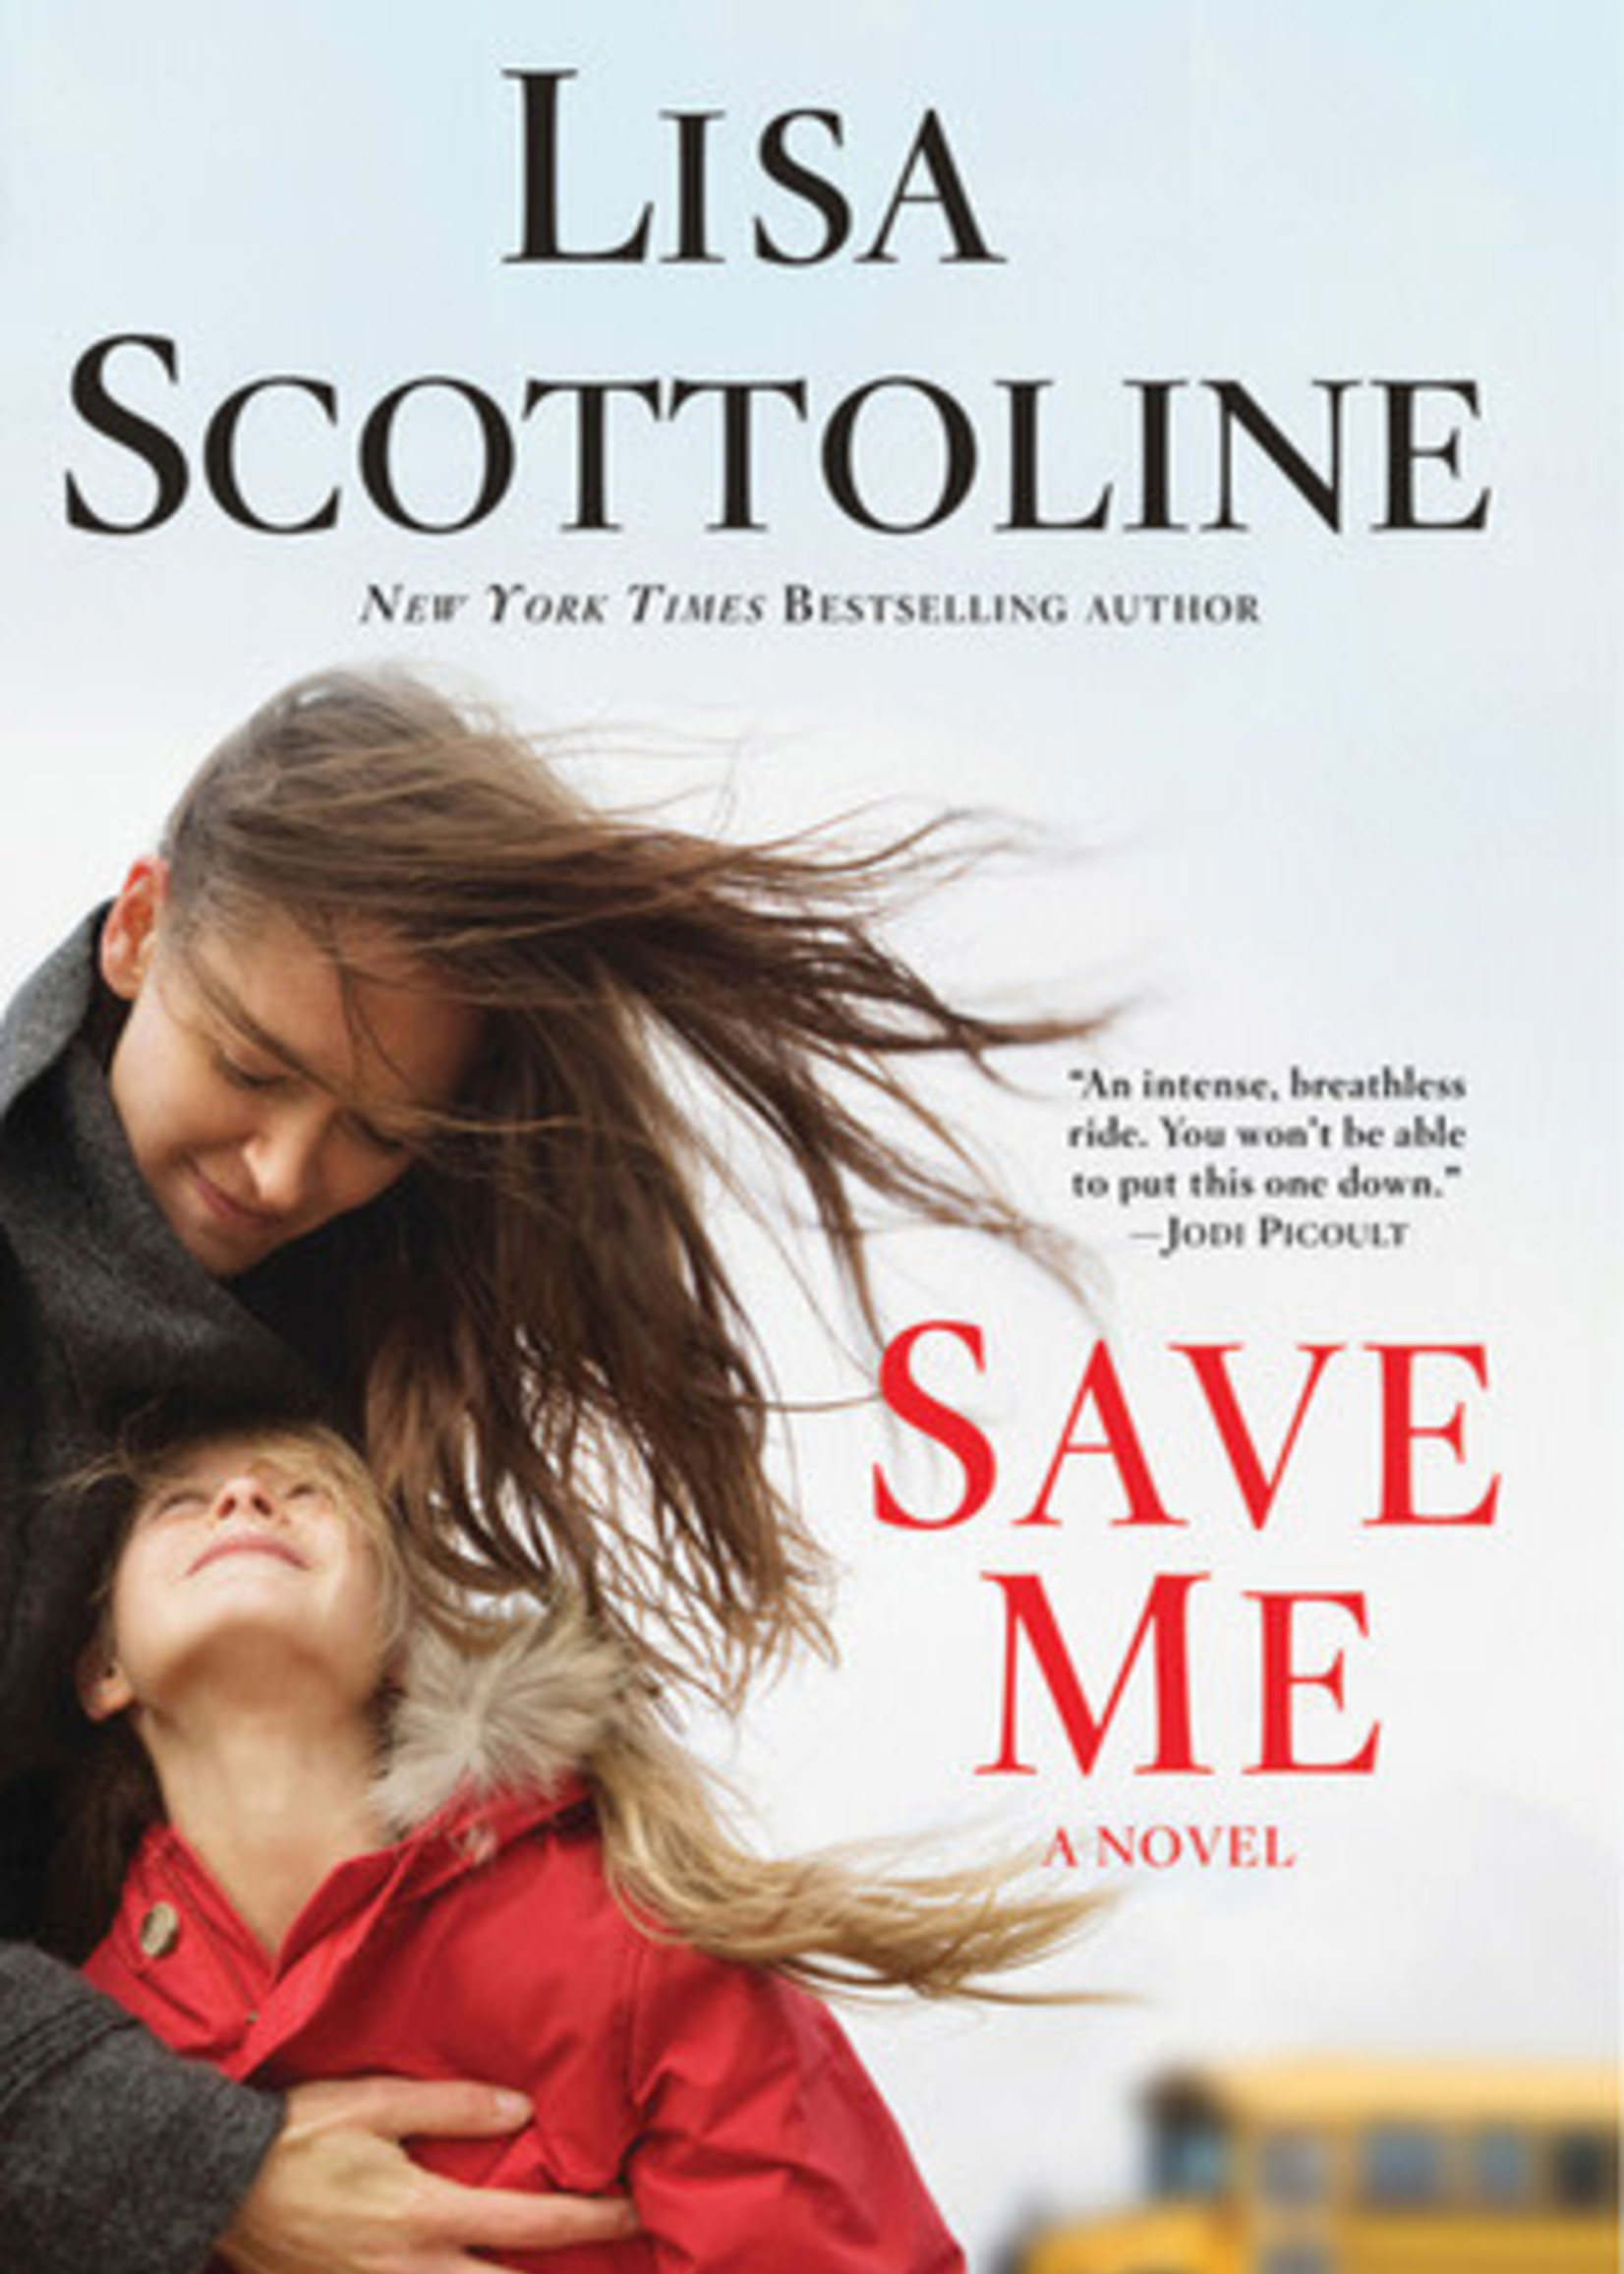 USED - Save Me by Lisa Scottoline